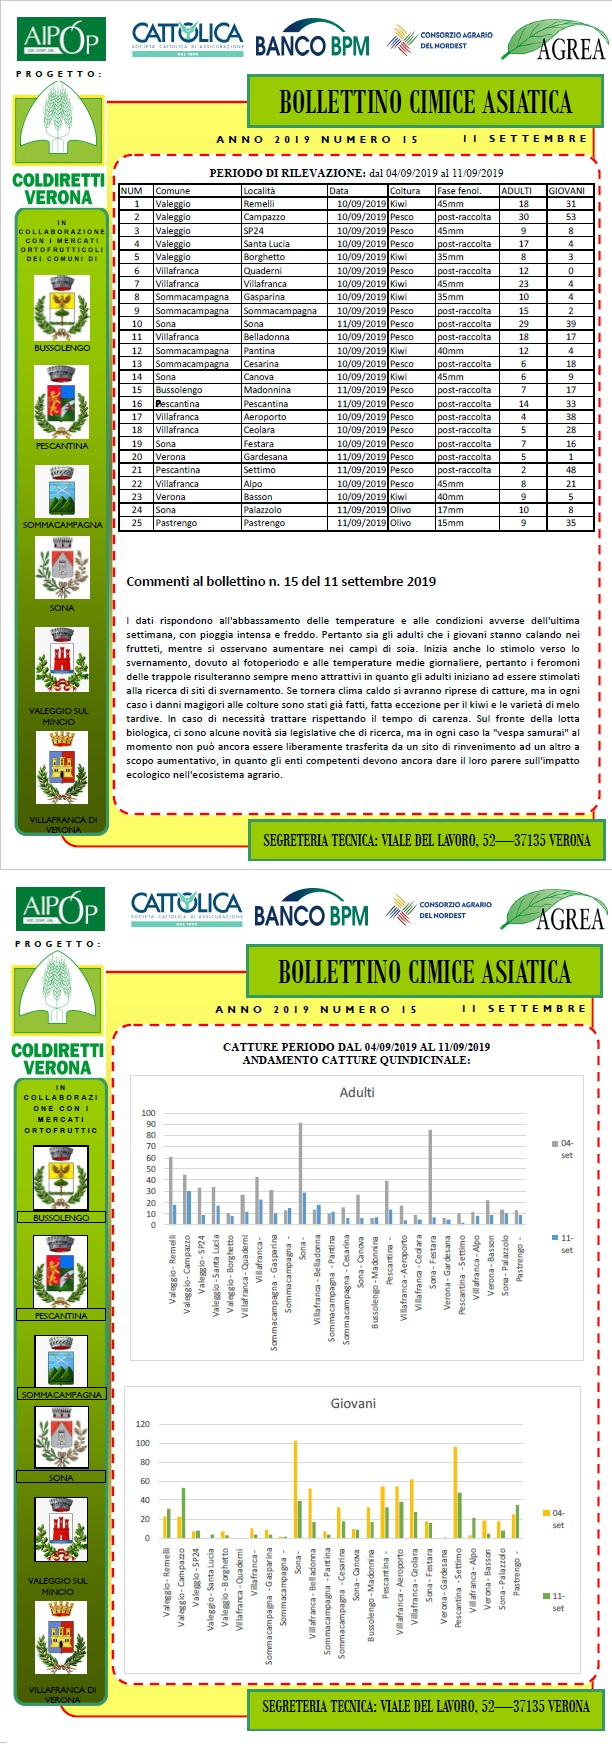 BOLLETTINO CIMICE ASIATICA N. 15 DEL 11/09/2019